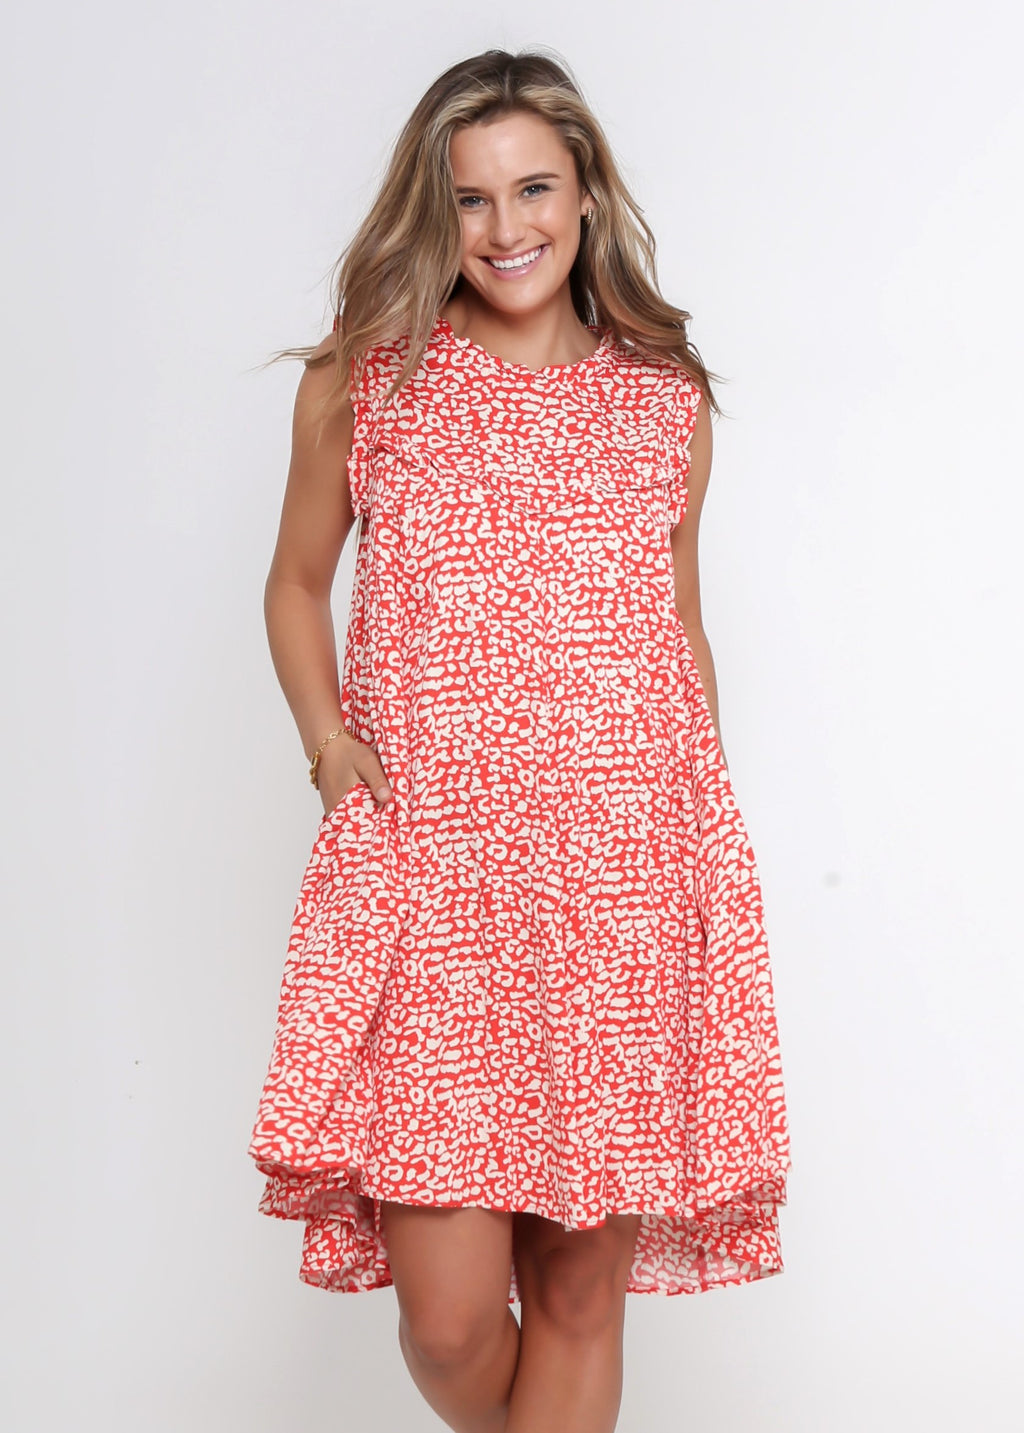 NEW - LAYLA DRESS - RED LEOPARD